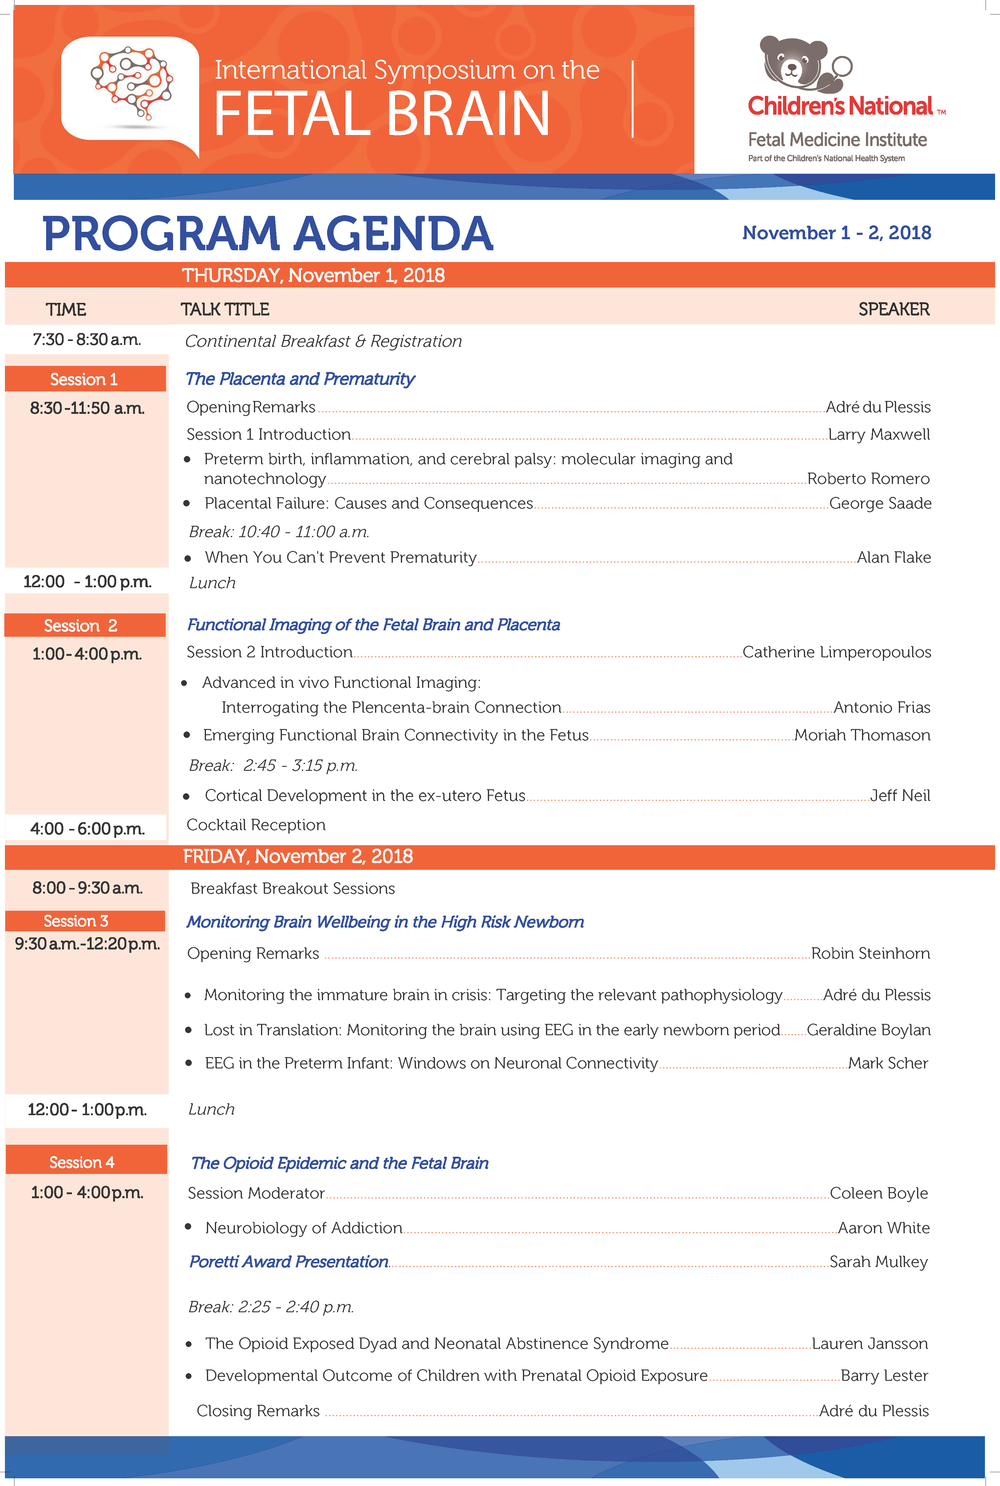 ISFB 2018 Agenda Posterv2.png